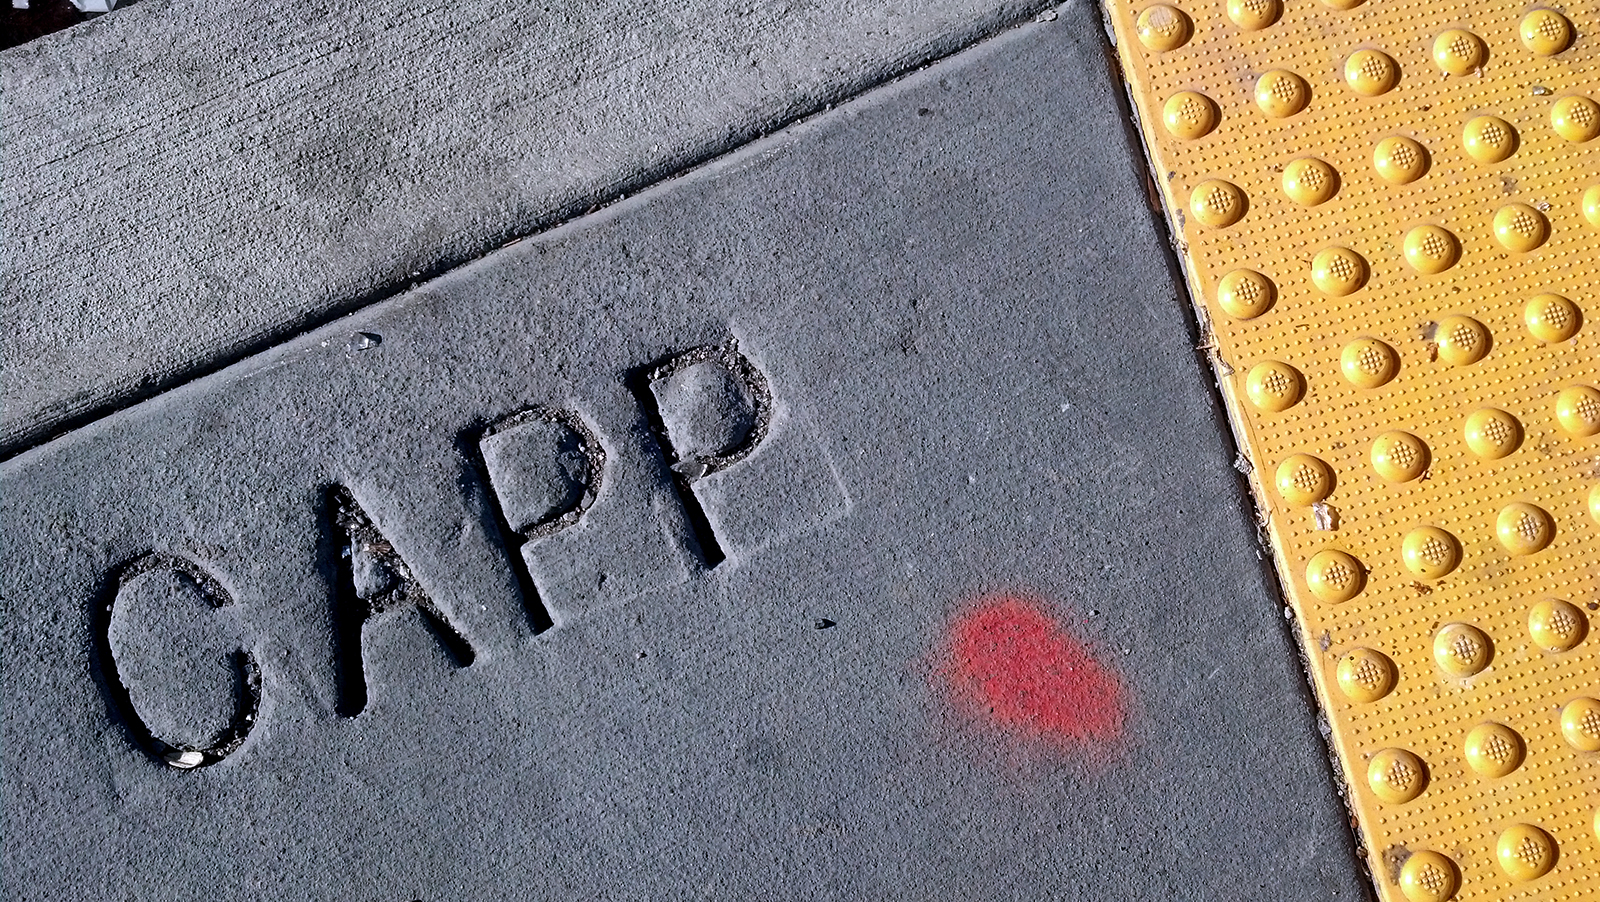 """A close-up of """"Capp"""" written on the sidewalk."""